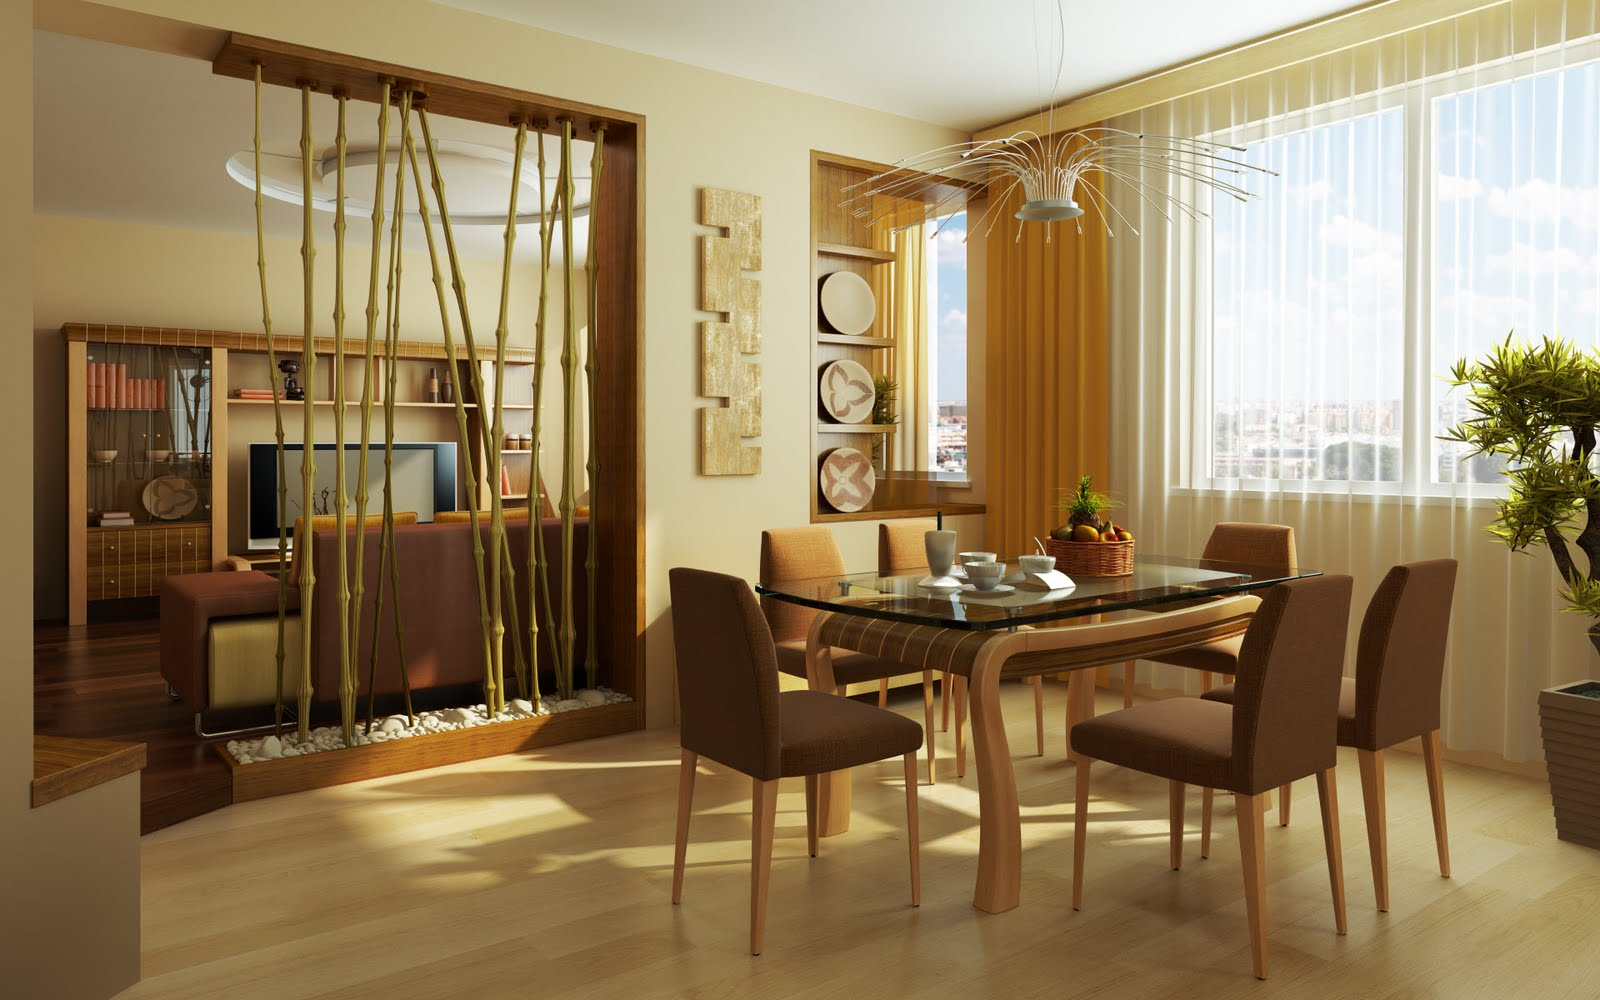 Remarkable Dining Room Interior Design Ideas 1600 x 1000 · 193 kB · jpeg